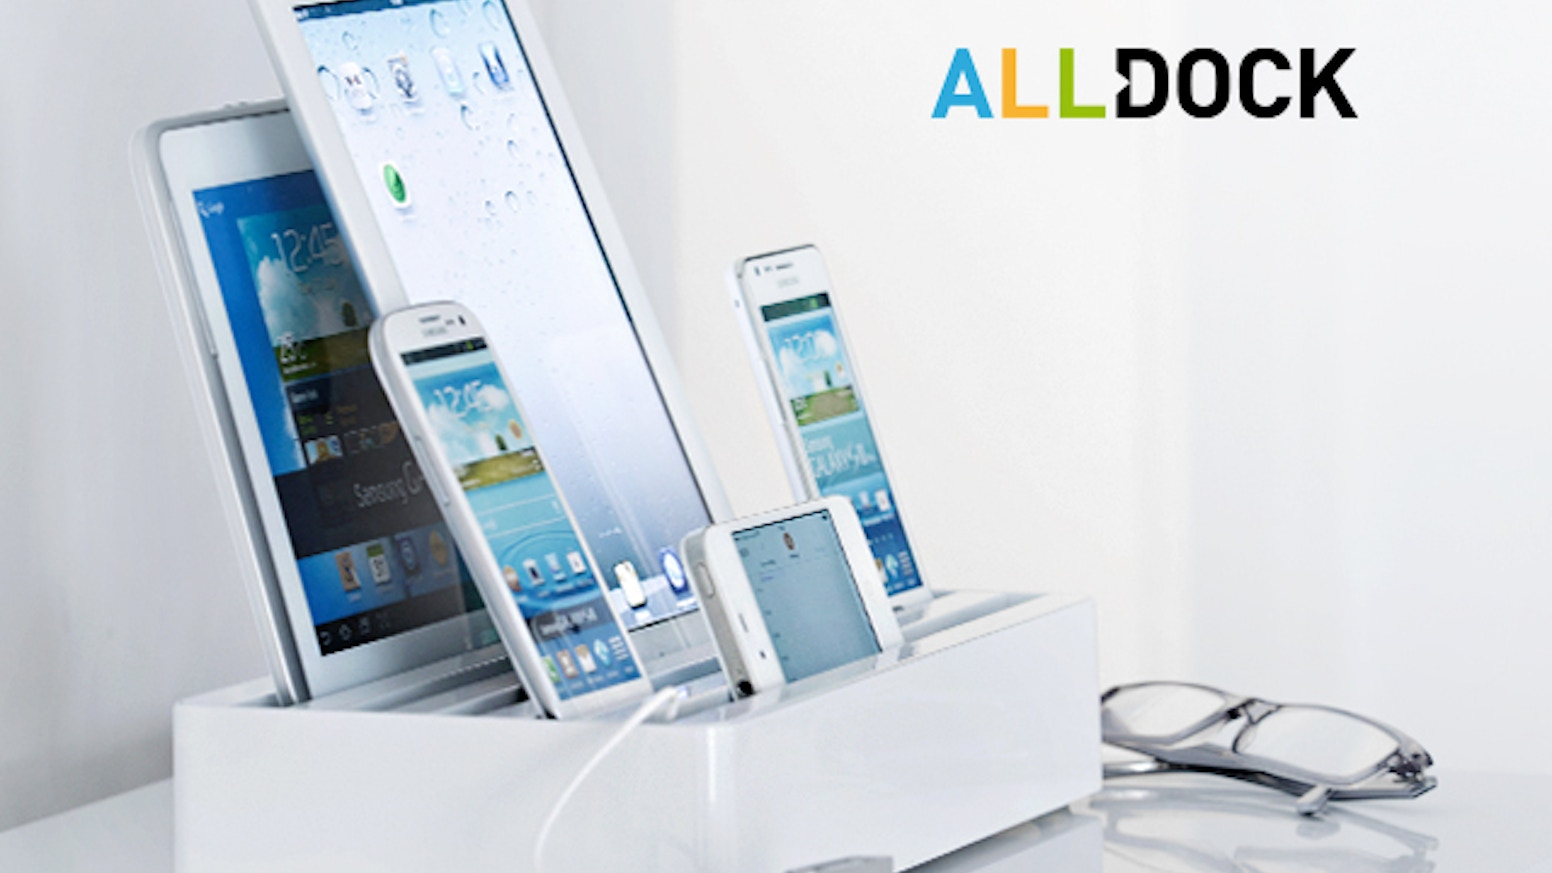 ALL-DOCK: The fastest docking station in the world. Works with iPhone, iPad, Android, Apple, Samsung, Sony, HTC, Kindle, Nokia, Huawei